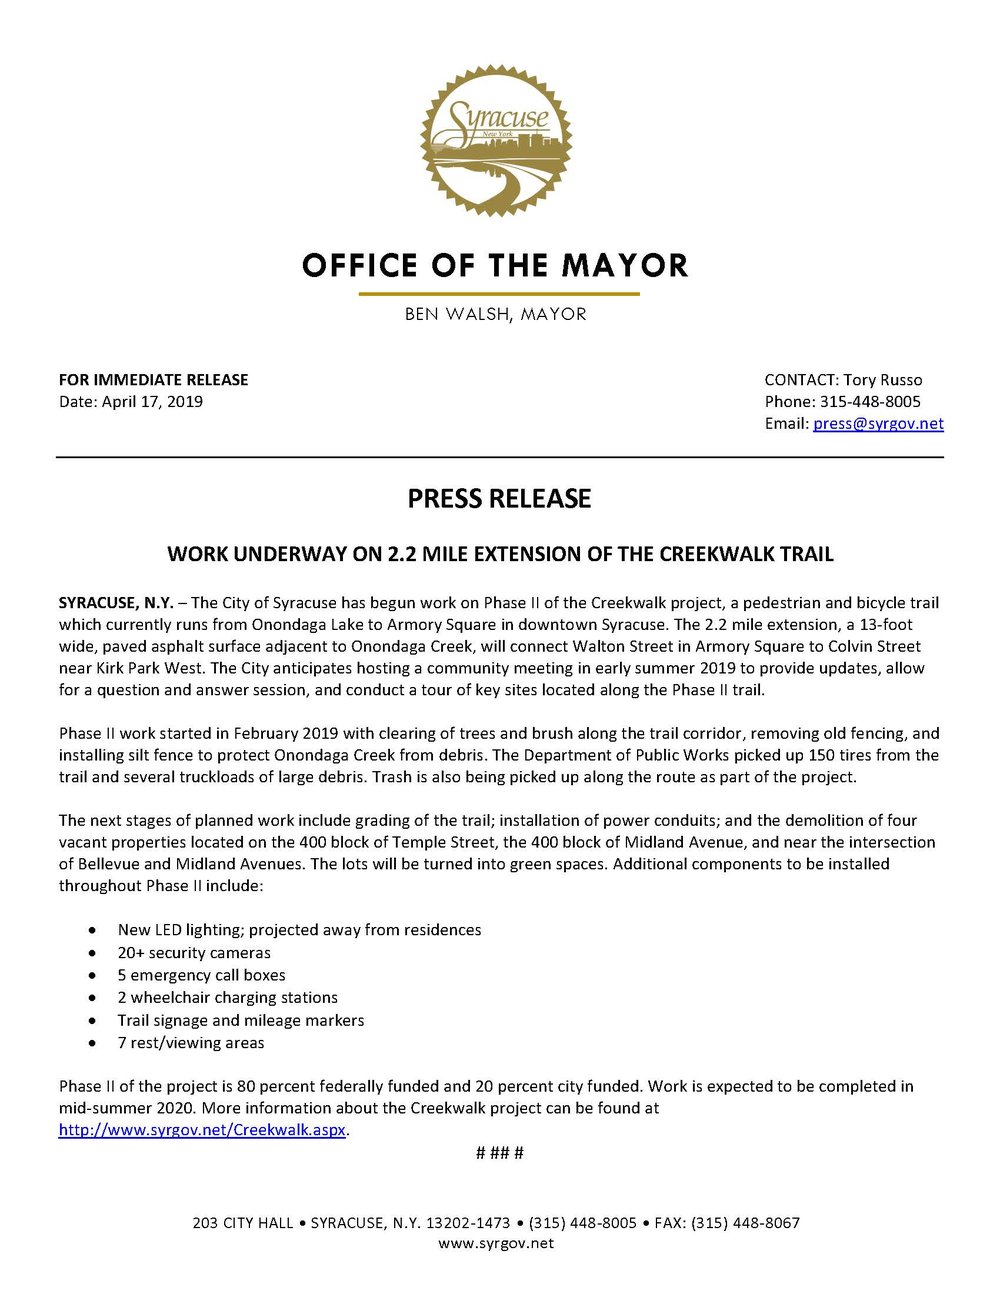 2019 04 17 PRESS RELEASE Work Underway on 2.2 Mile Extension of the Cree....jpg